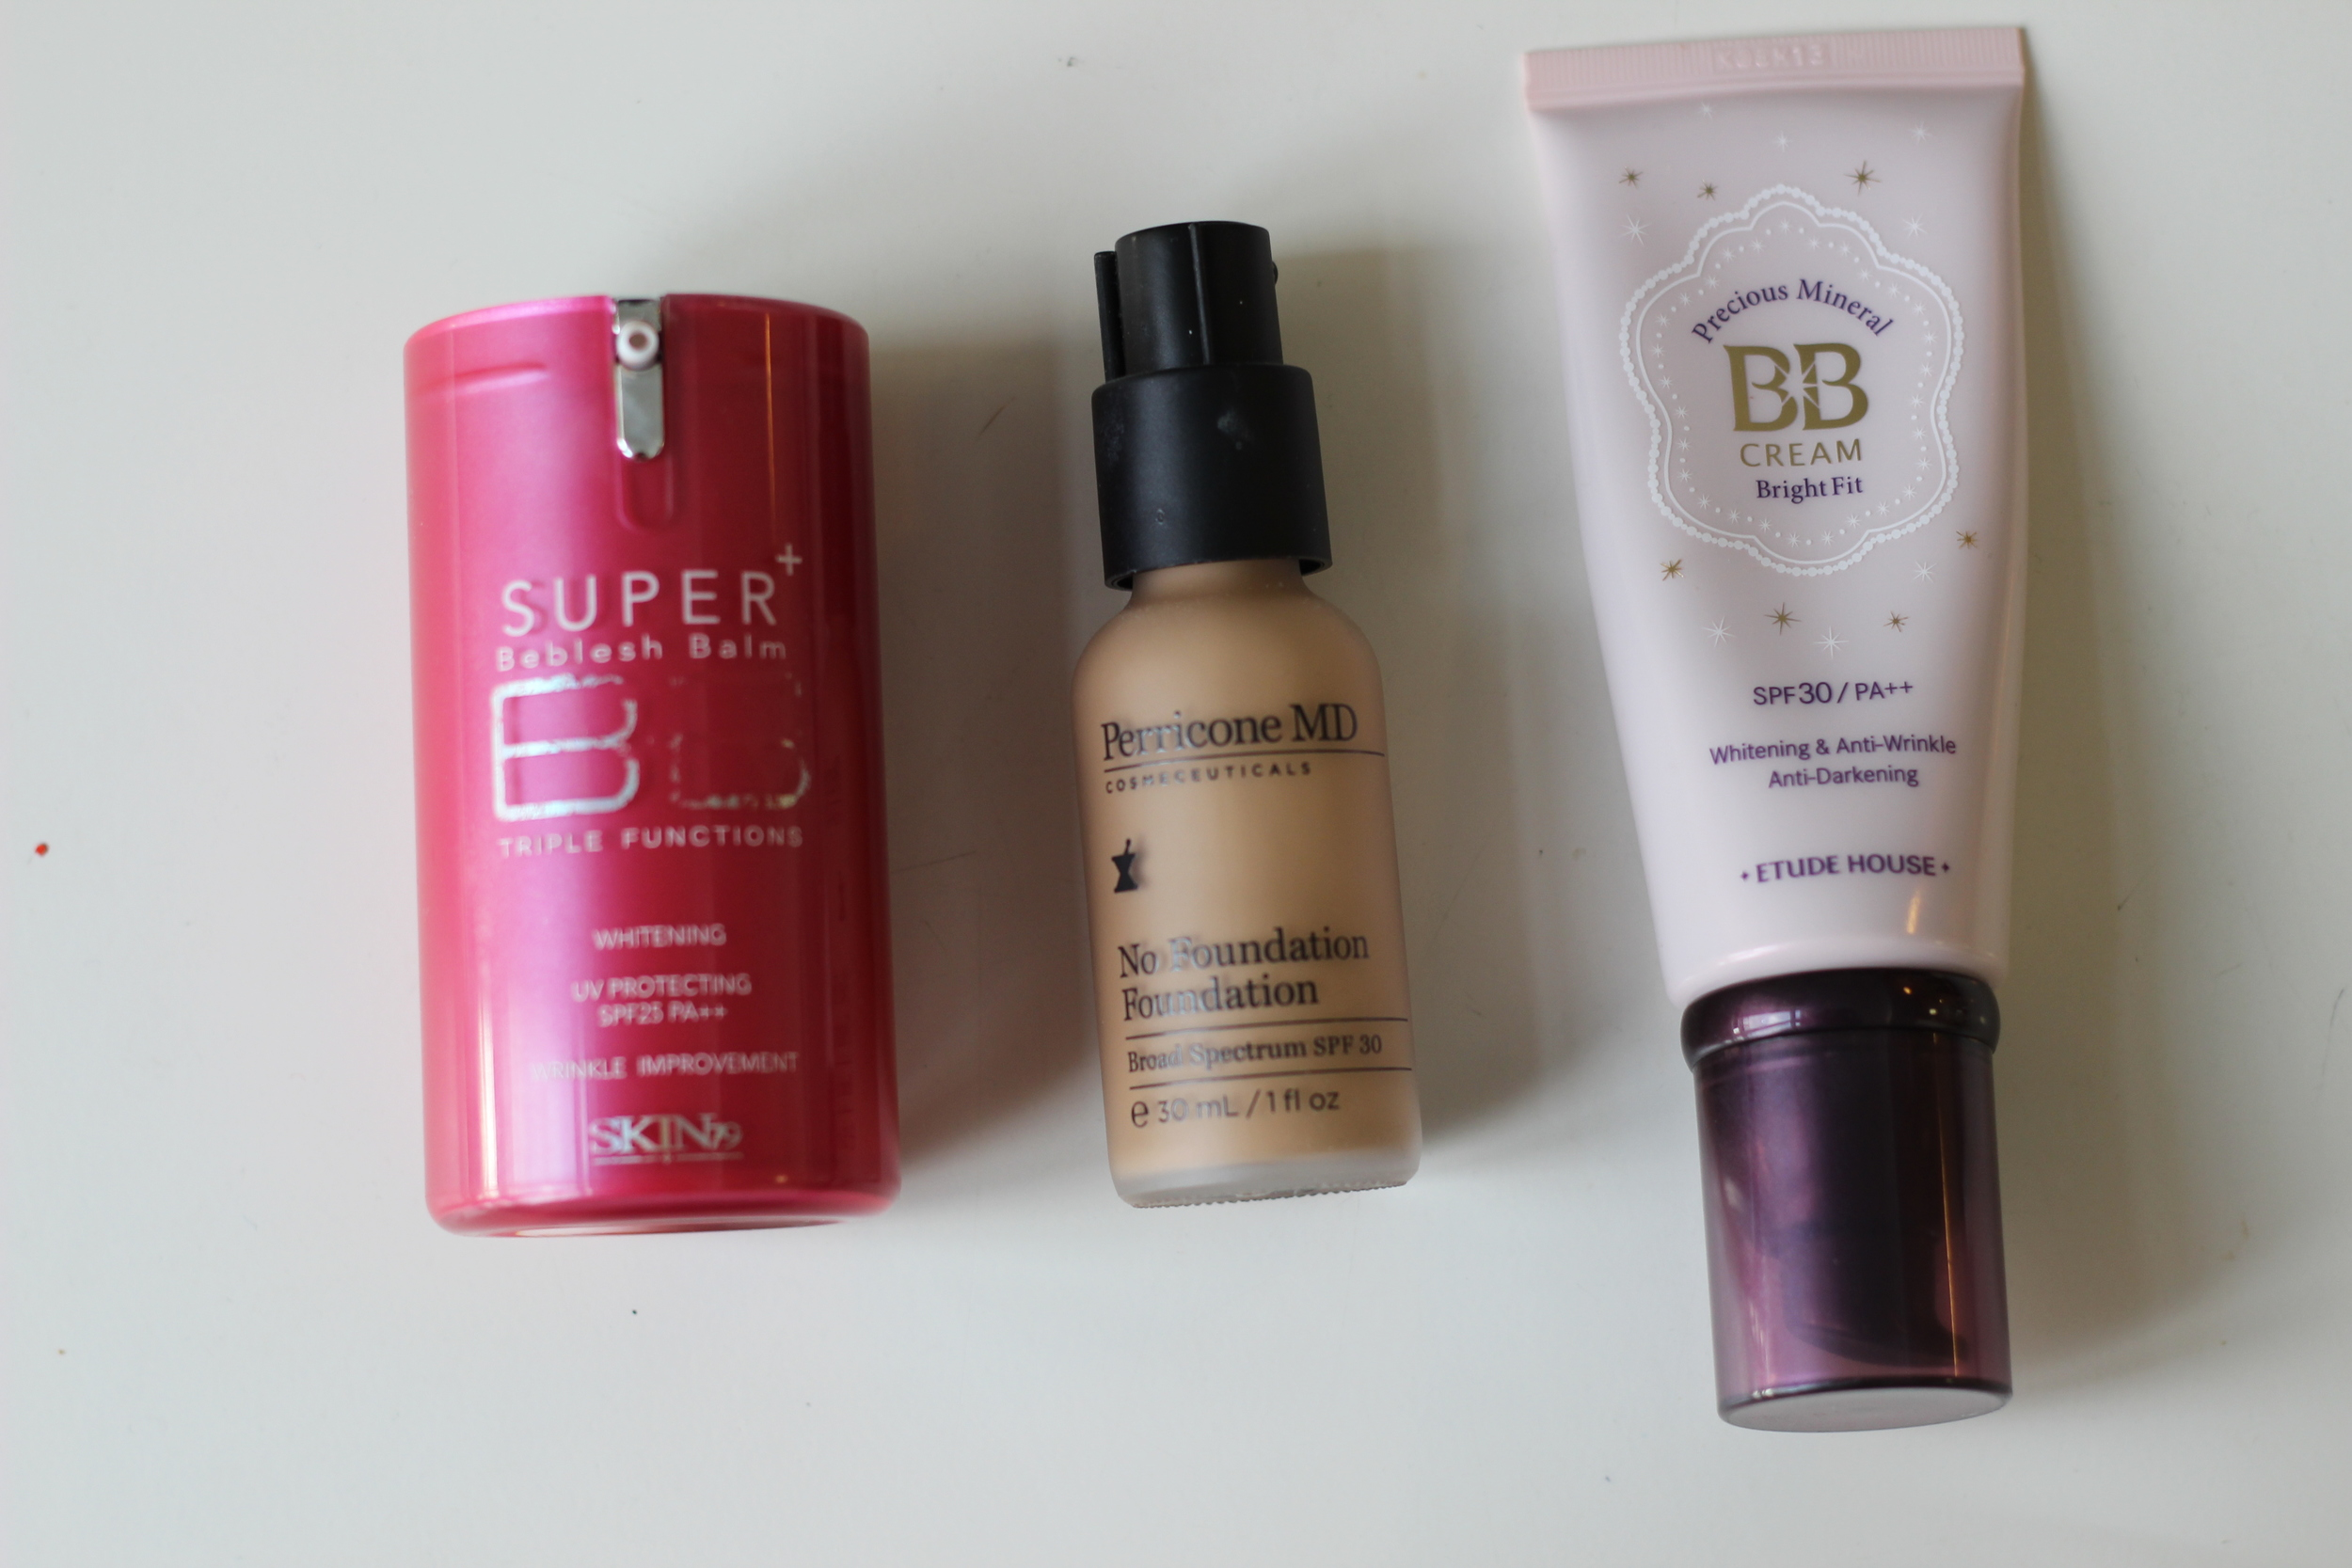 Left to Right: Skin79 BB Cream, Perricone No Foundation Foundation, and Etude House Precious Mineral BB Cream